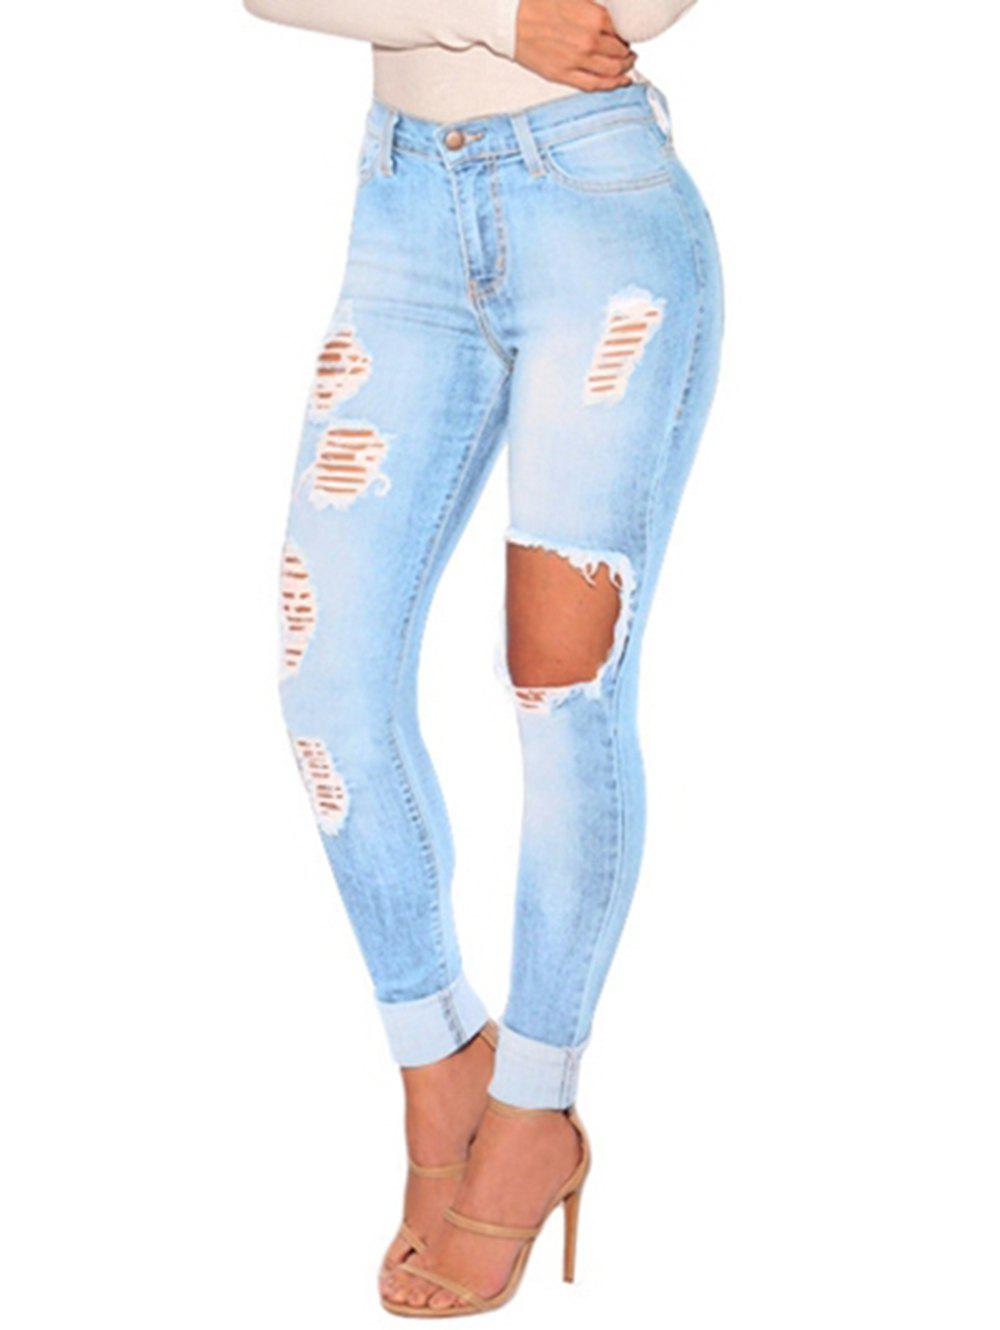 Buy Womens Juniors Distressed Ripped  Skinny Denim Ankle Length Jeans